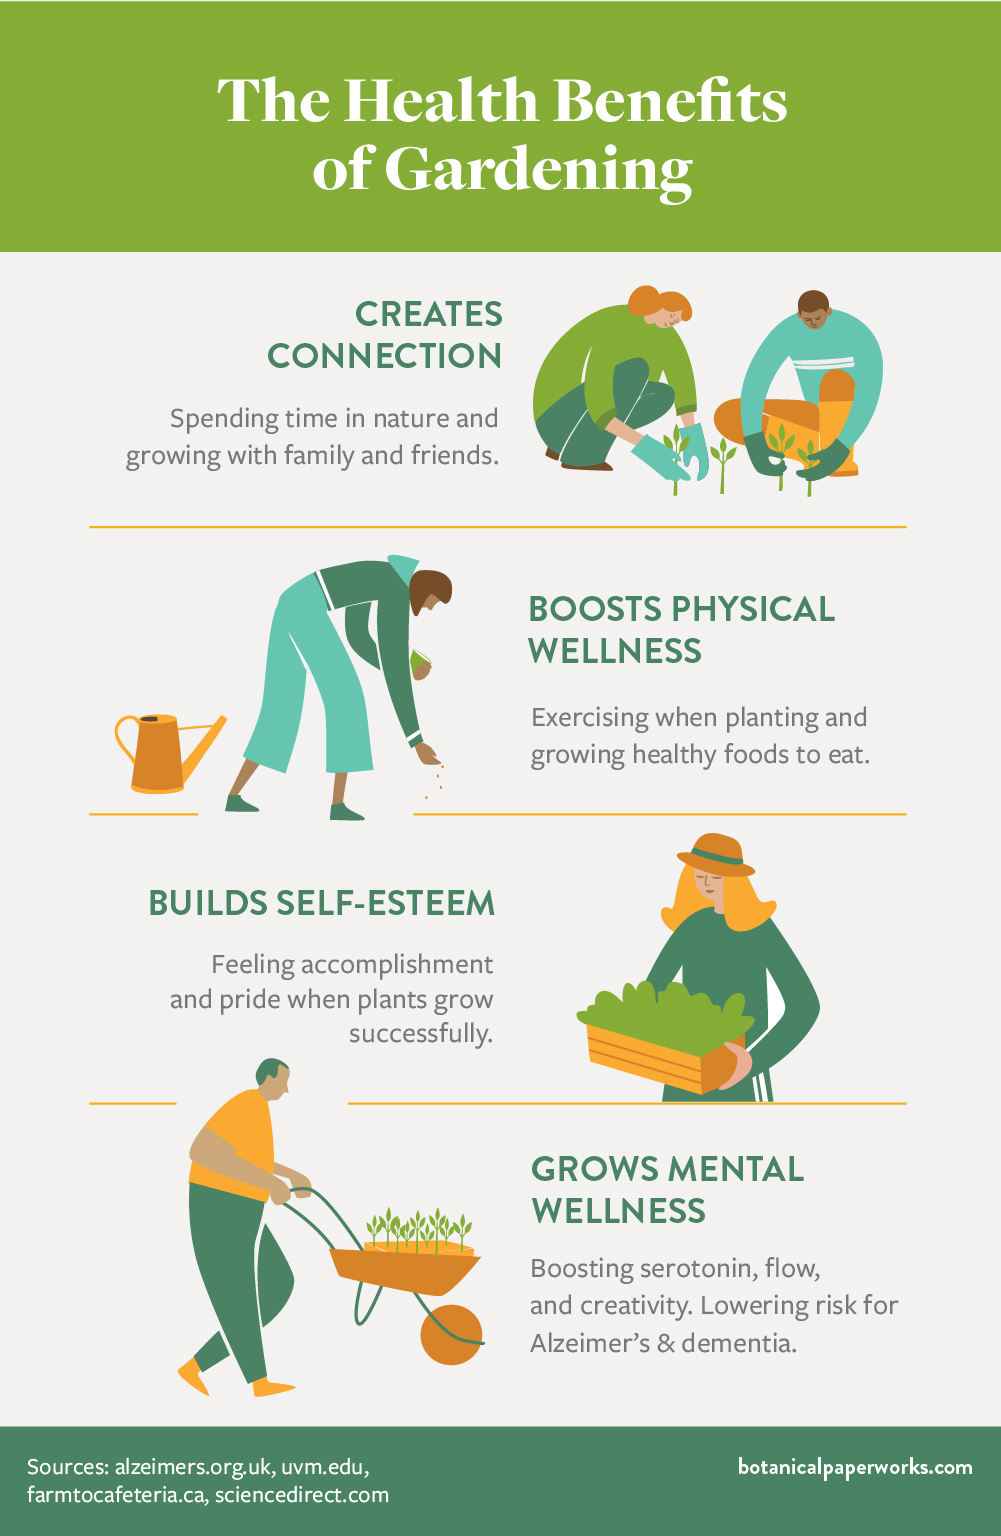 infographic on the health benefits of gardening: creates connection, boosts physical wellness, builds self-esteem, grows mental wellness